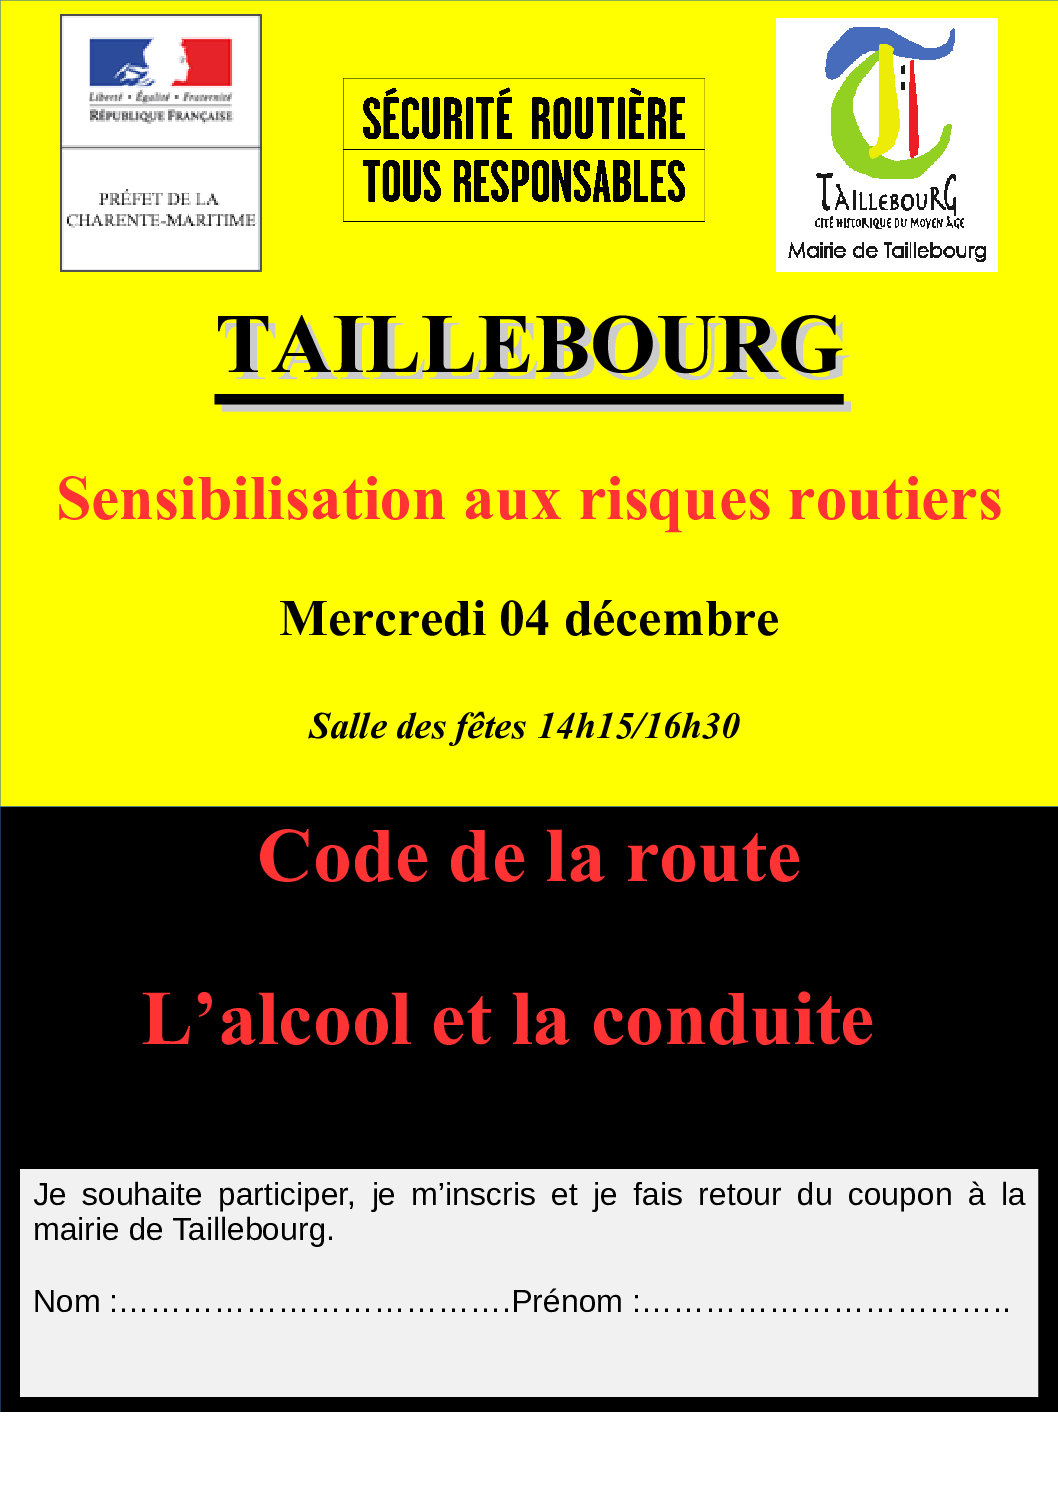 Sensibilisation_Taillebourg_Flyers_4dec2019